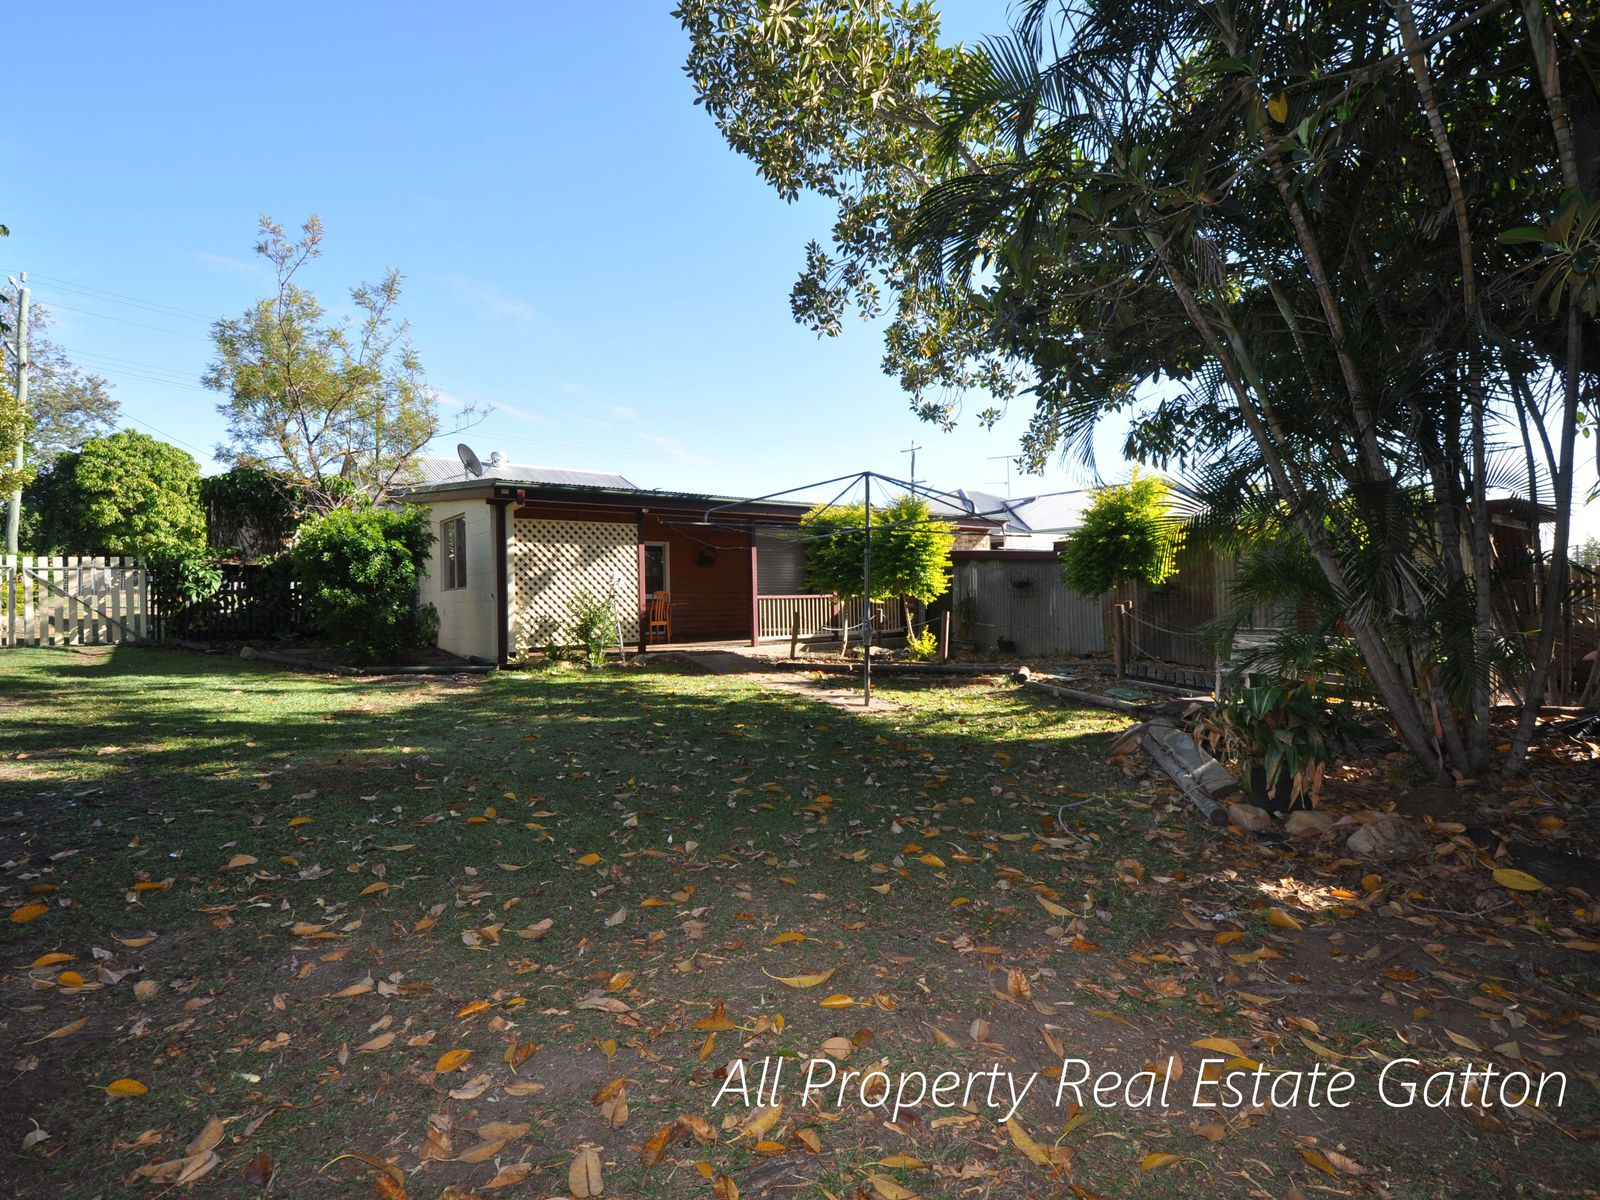 8 Whittle Street, Gatton